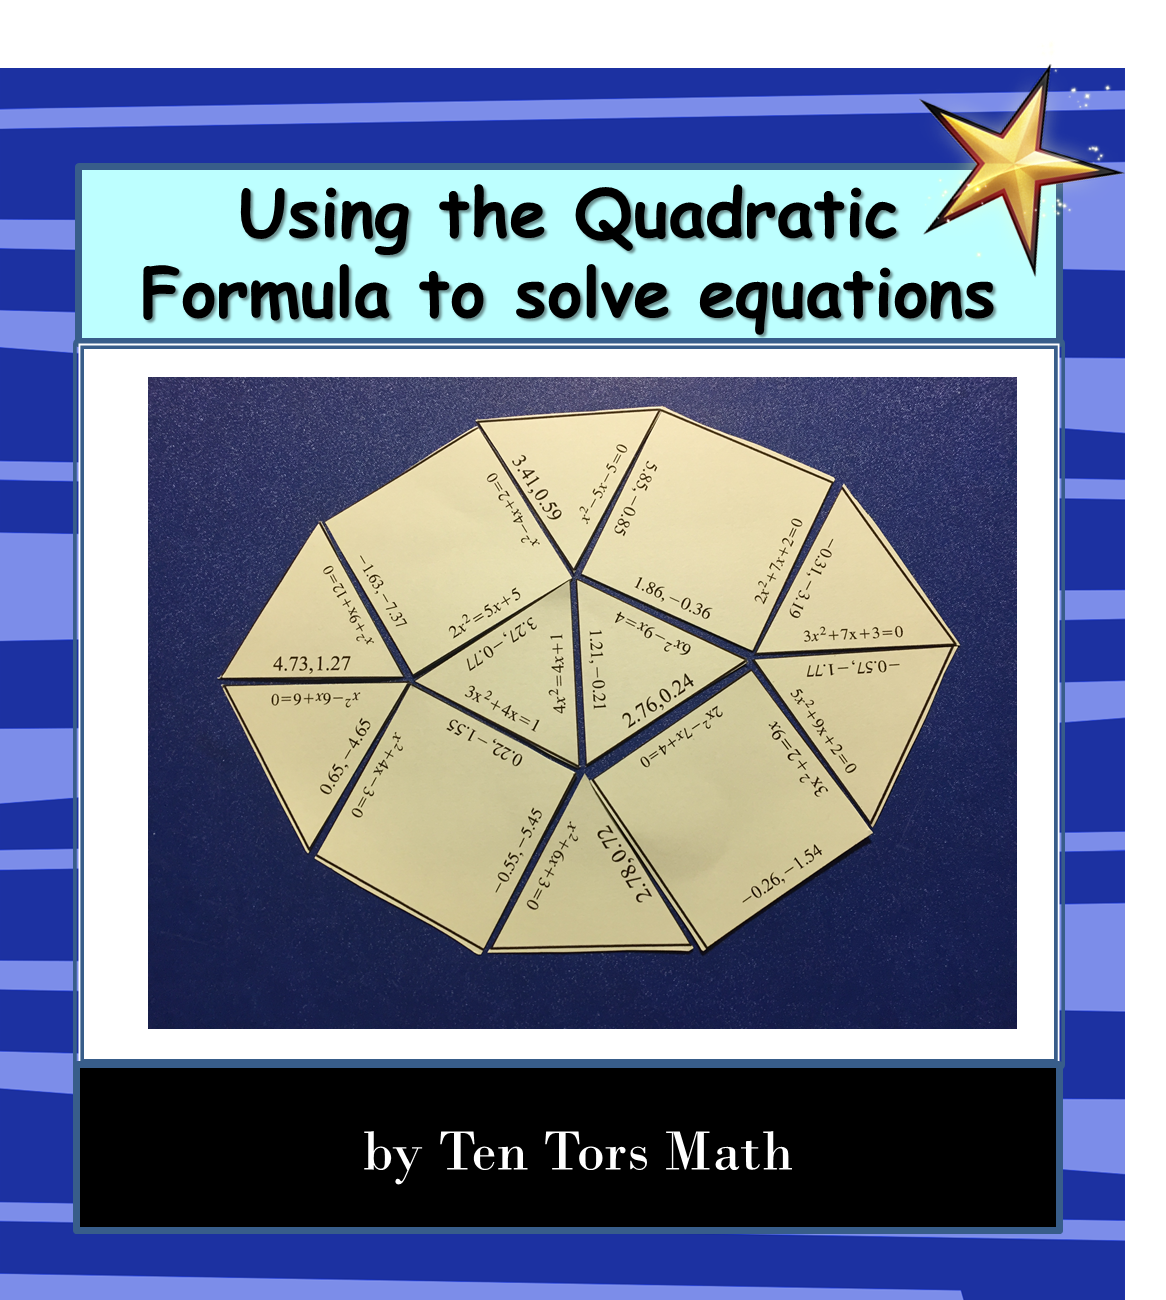 Solving Quadratic Equations Puzzle Activity Tentors Math